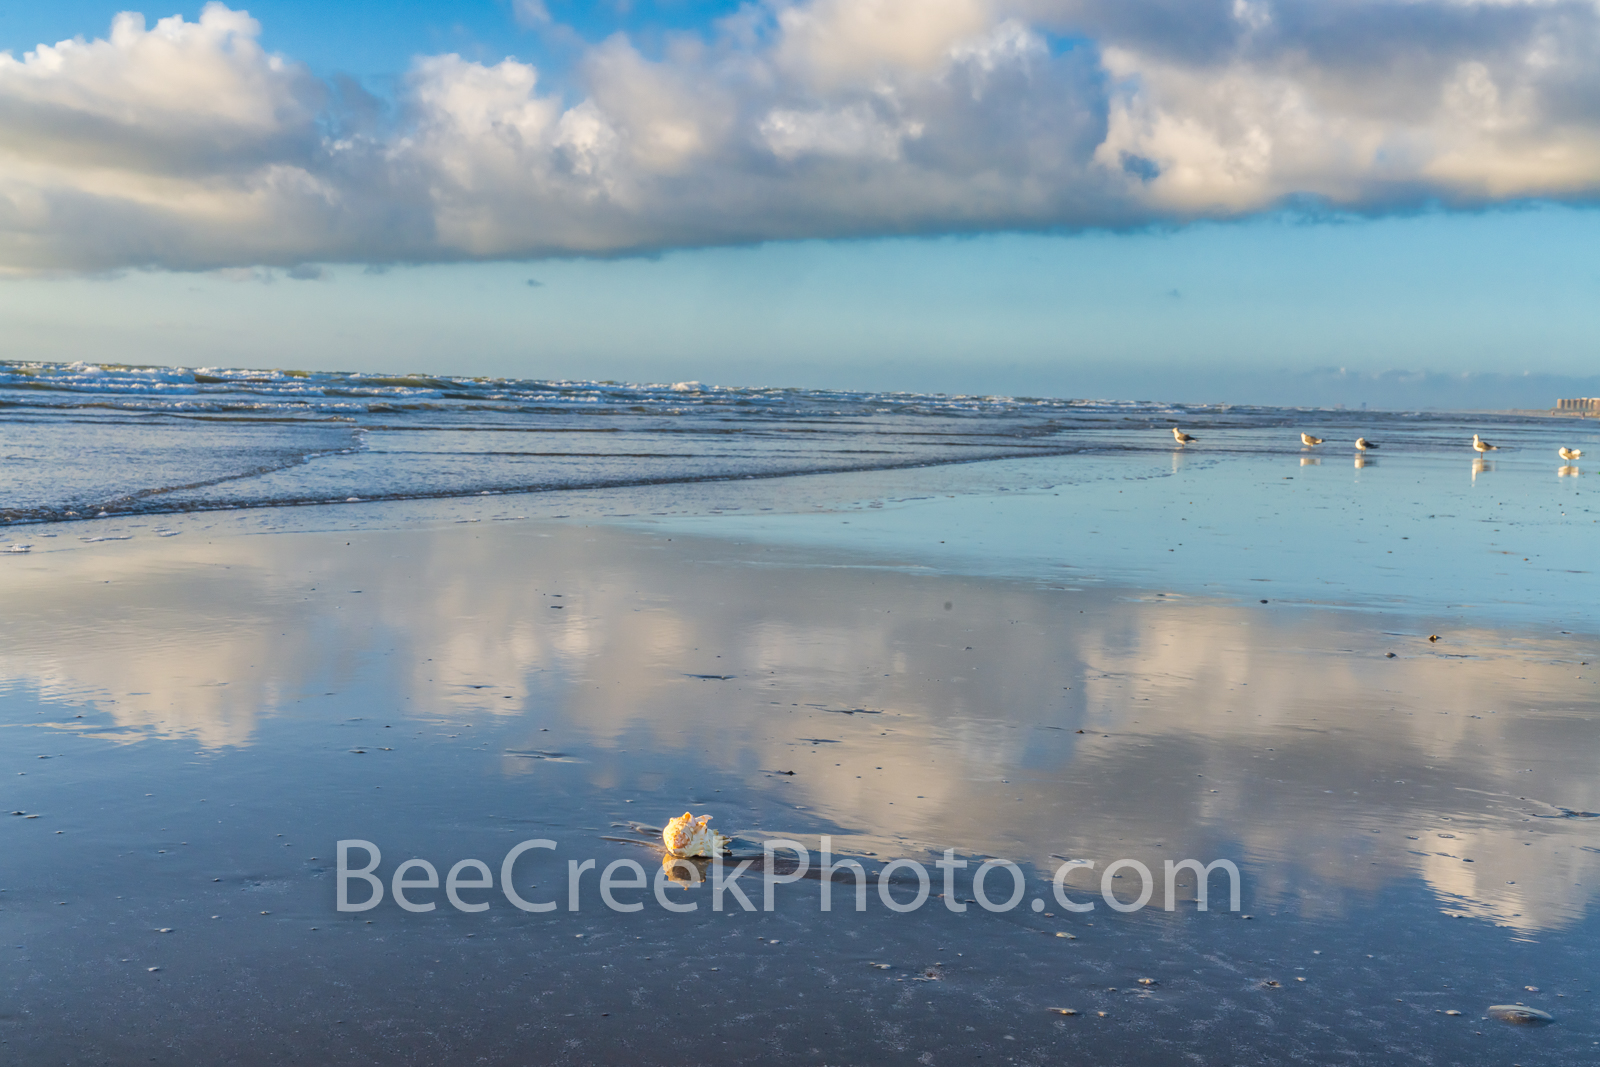 texas, coast, coastal, texas coast, seashore, beach, beaches, sea shell, clouds, reflections, shell, surf, tide, blue sky, blue, puffy white clouds, port aransas, port a, corpus christi, bird, dolphin, photo